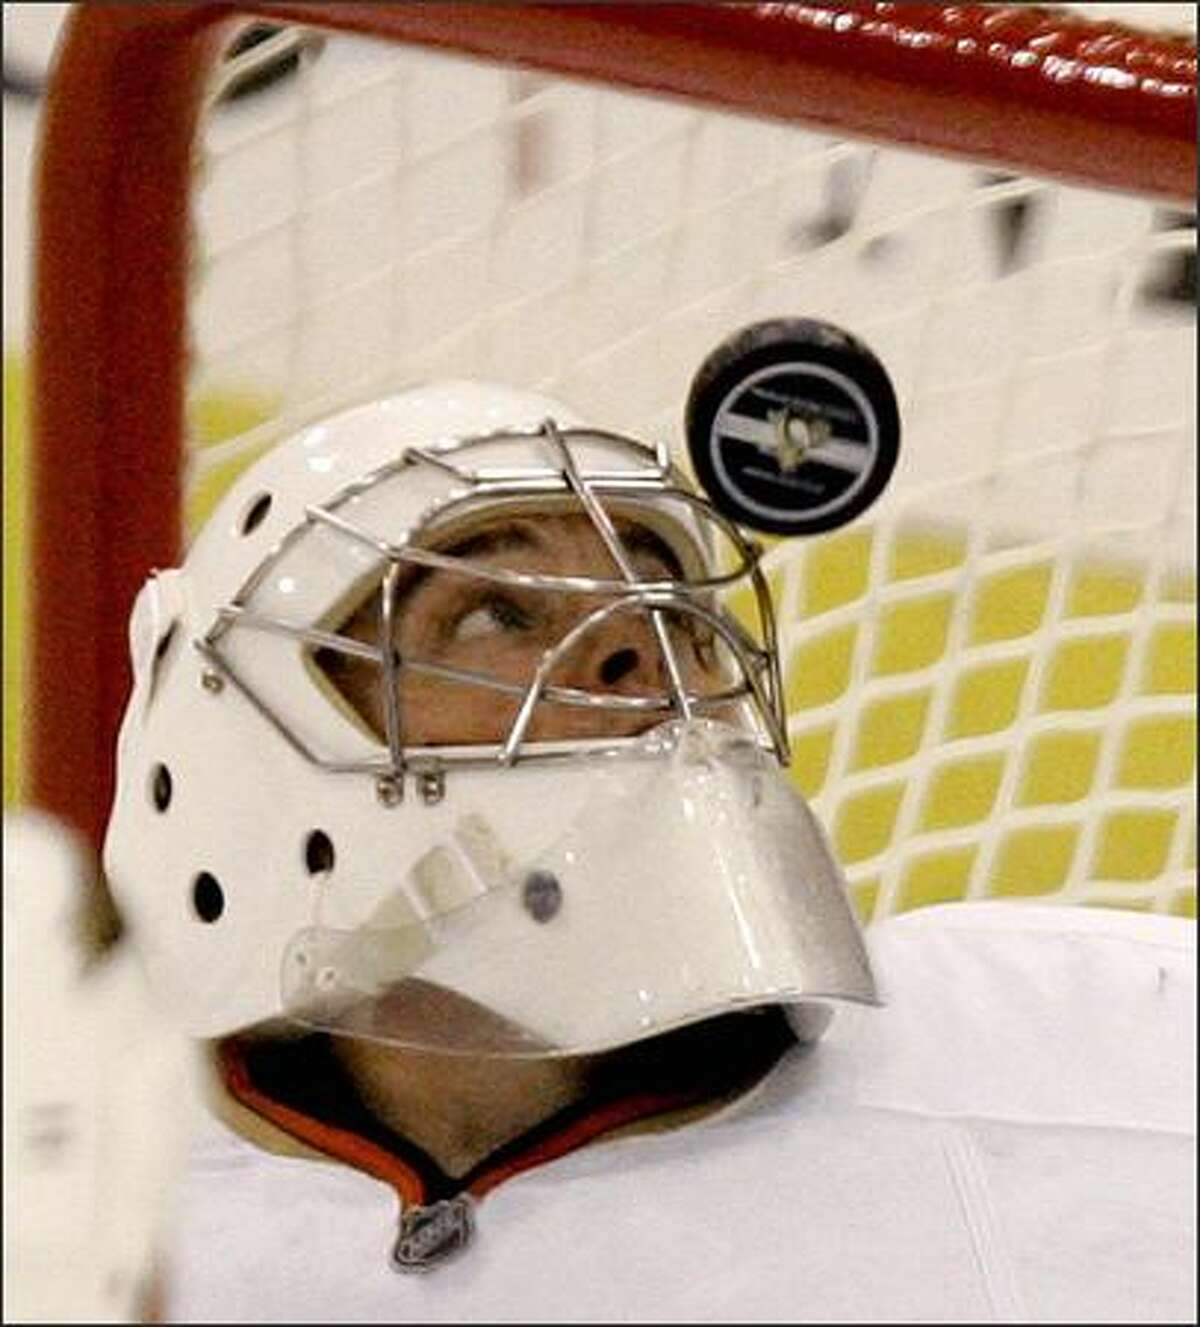 The puck bounces off the mask of Anaheim Ducks' goalie Jonas Hilleras he plays against the Pittsburgh Penguins in the first period of the hockey game in Pittsburgh,Saturday, Oct. 6, 2007. (AP Photo/Keith Srakocic)